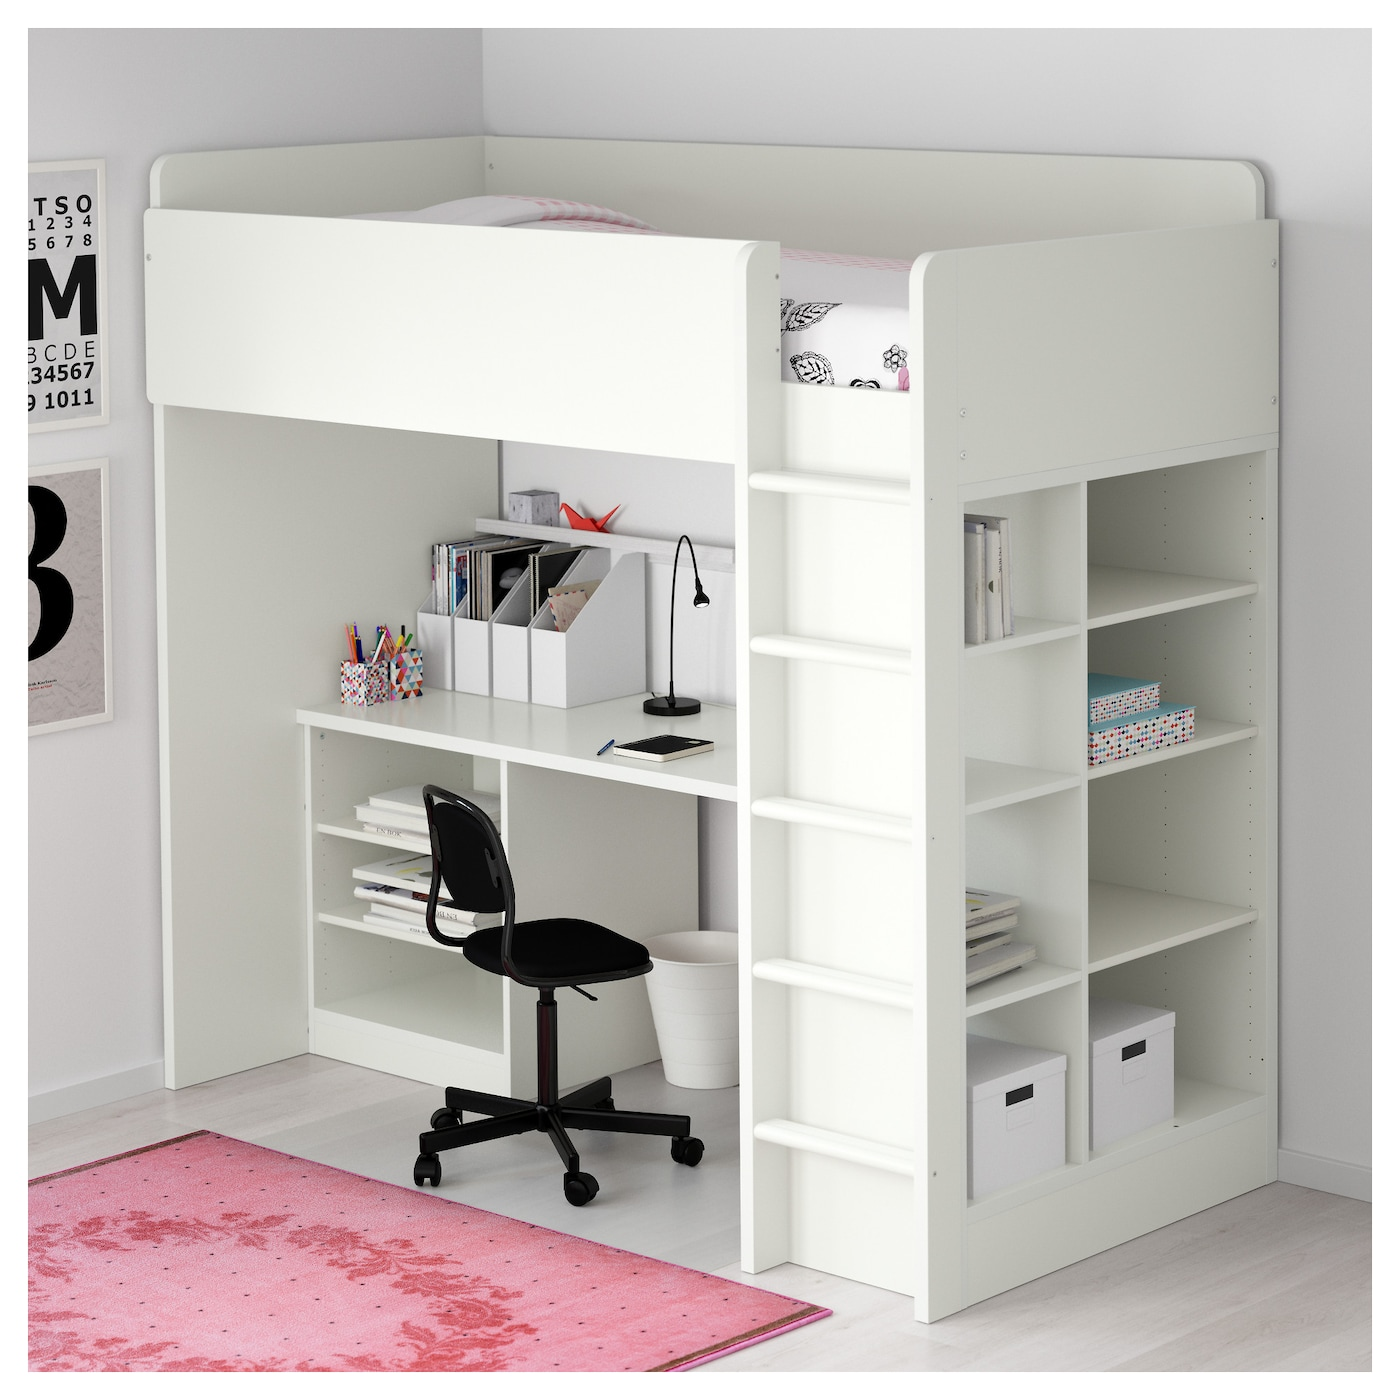 stuva combi lit mezz 2 tabl 3 tabl blanc 207x99x193 cm ikea. Black Bedroom Furniture Sets. Home Design Ideas